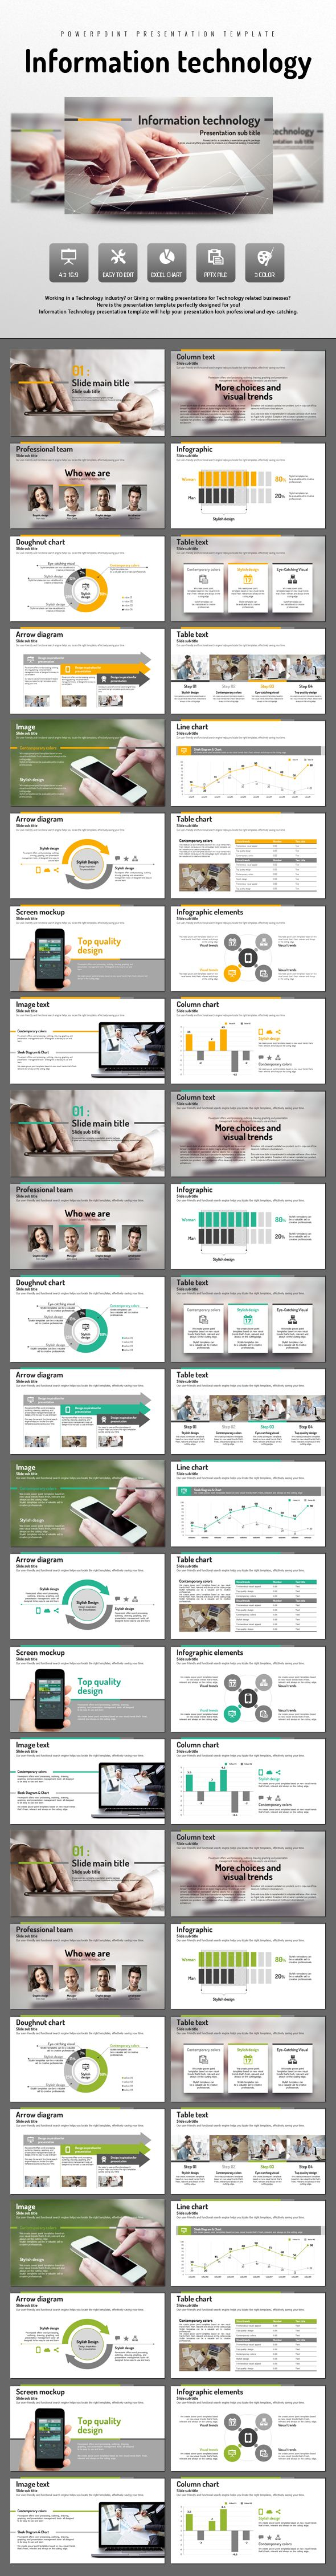 Information Technology (PowerPoint Templates)